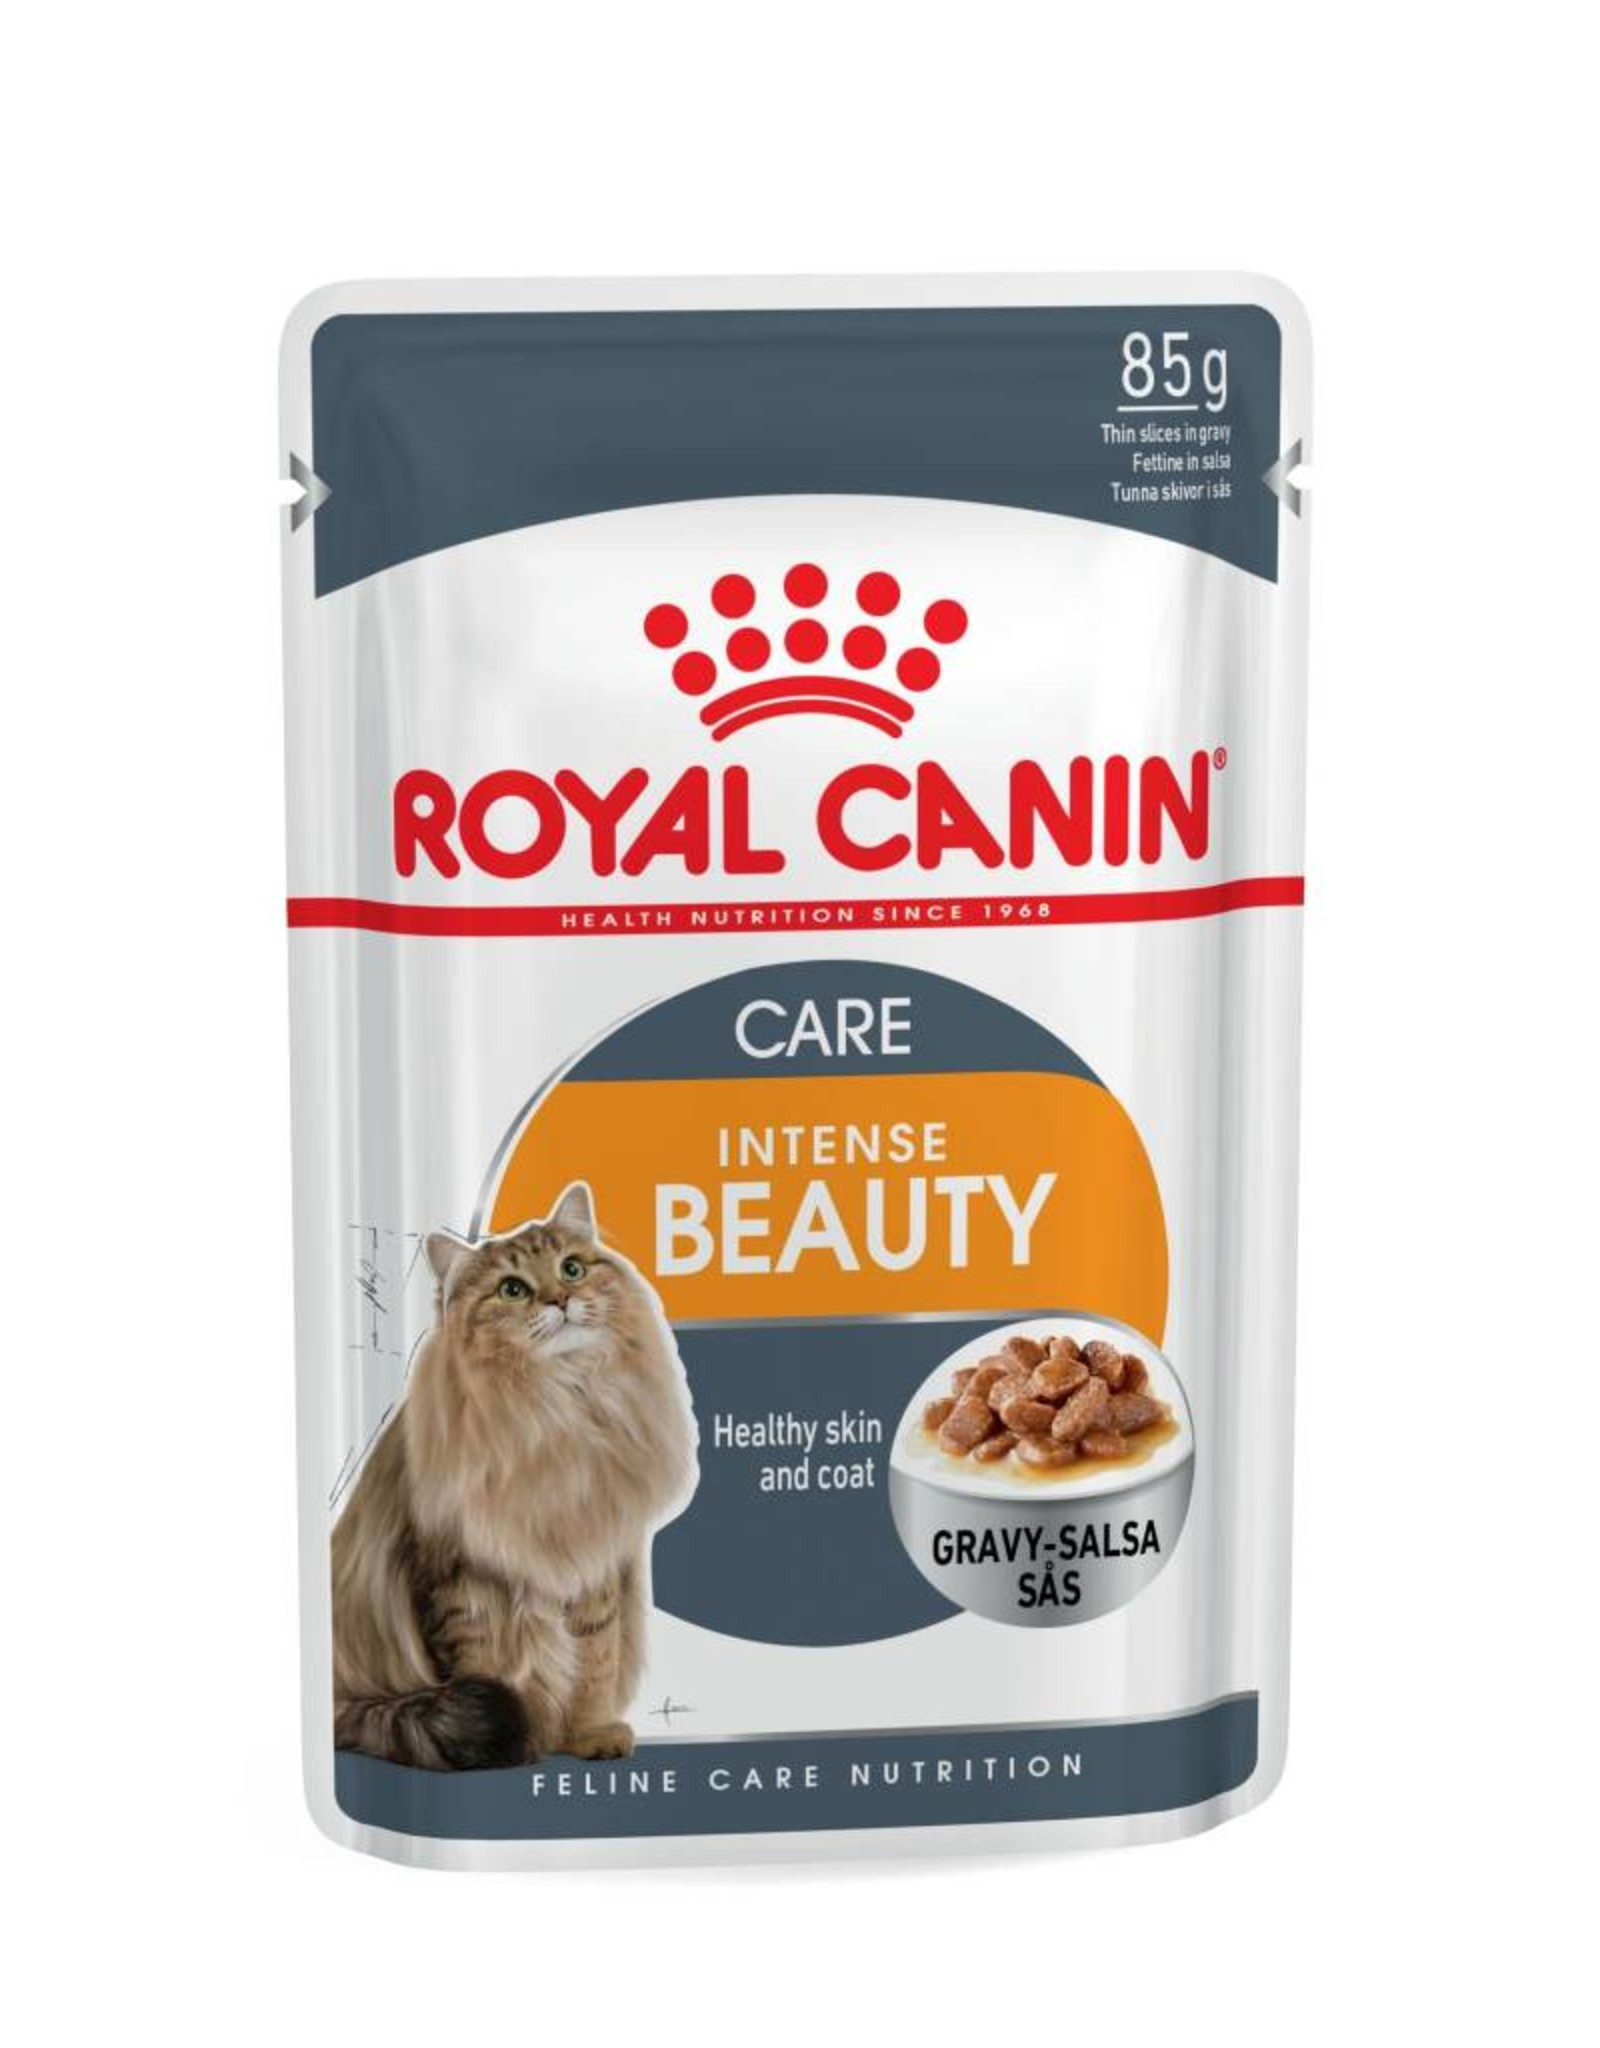 Royal Canin Intense Beauty Adult Cat Wet Food Pouch with Gravy, 85g